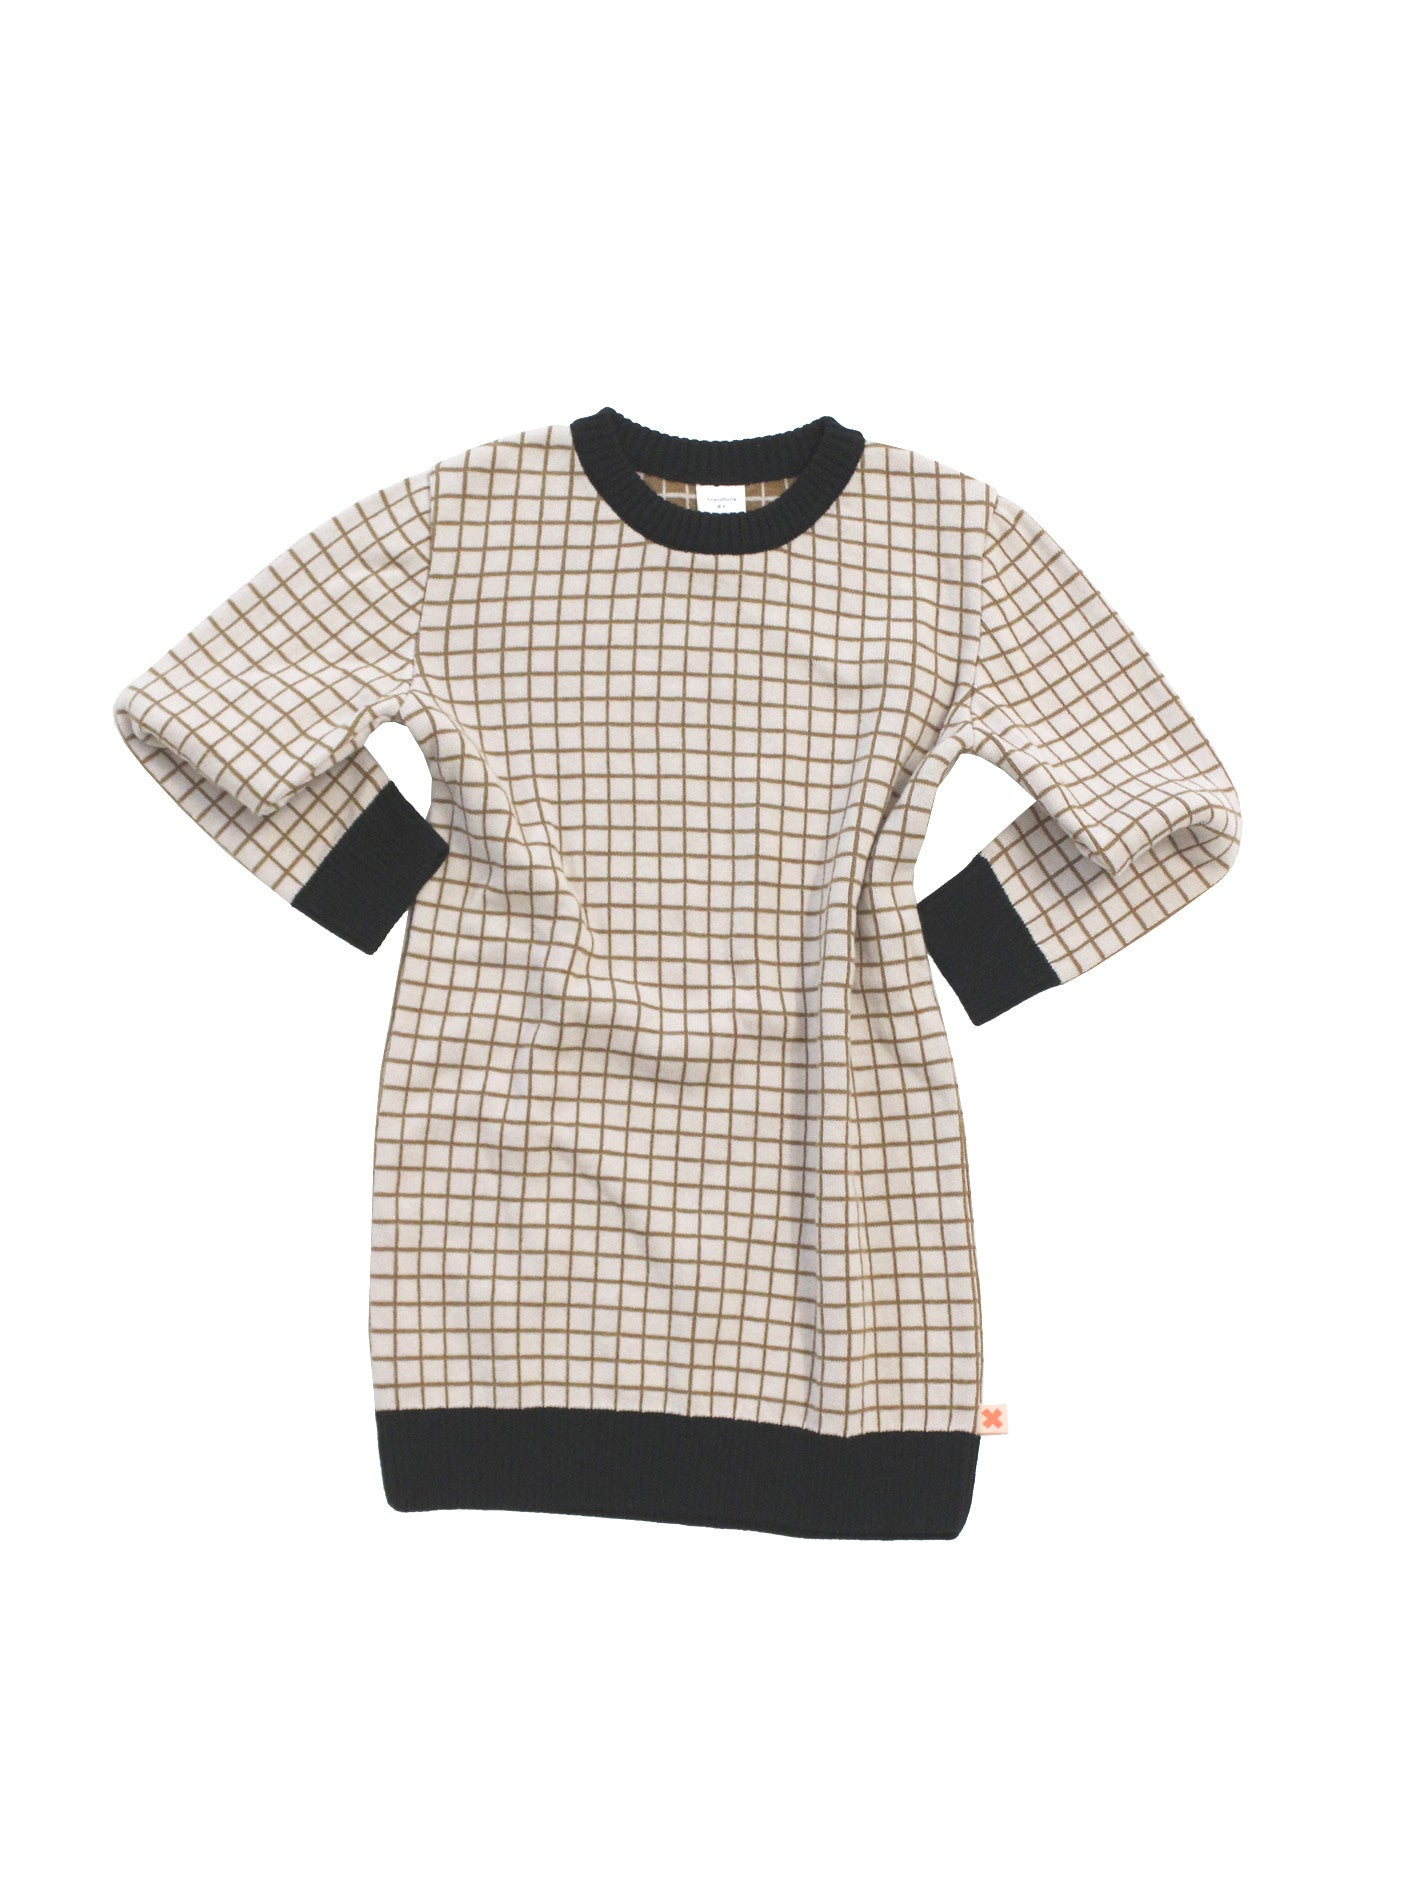 10e9192dd2 GRID OVERSIZED KNIT DRESS (ONLY 1 LEFT). FROM 80€ NOW  by tiny ...